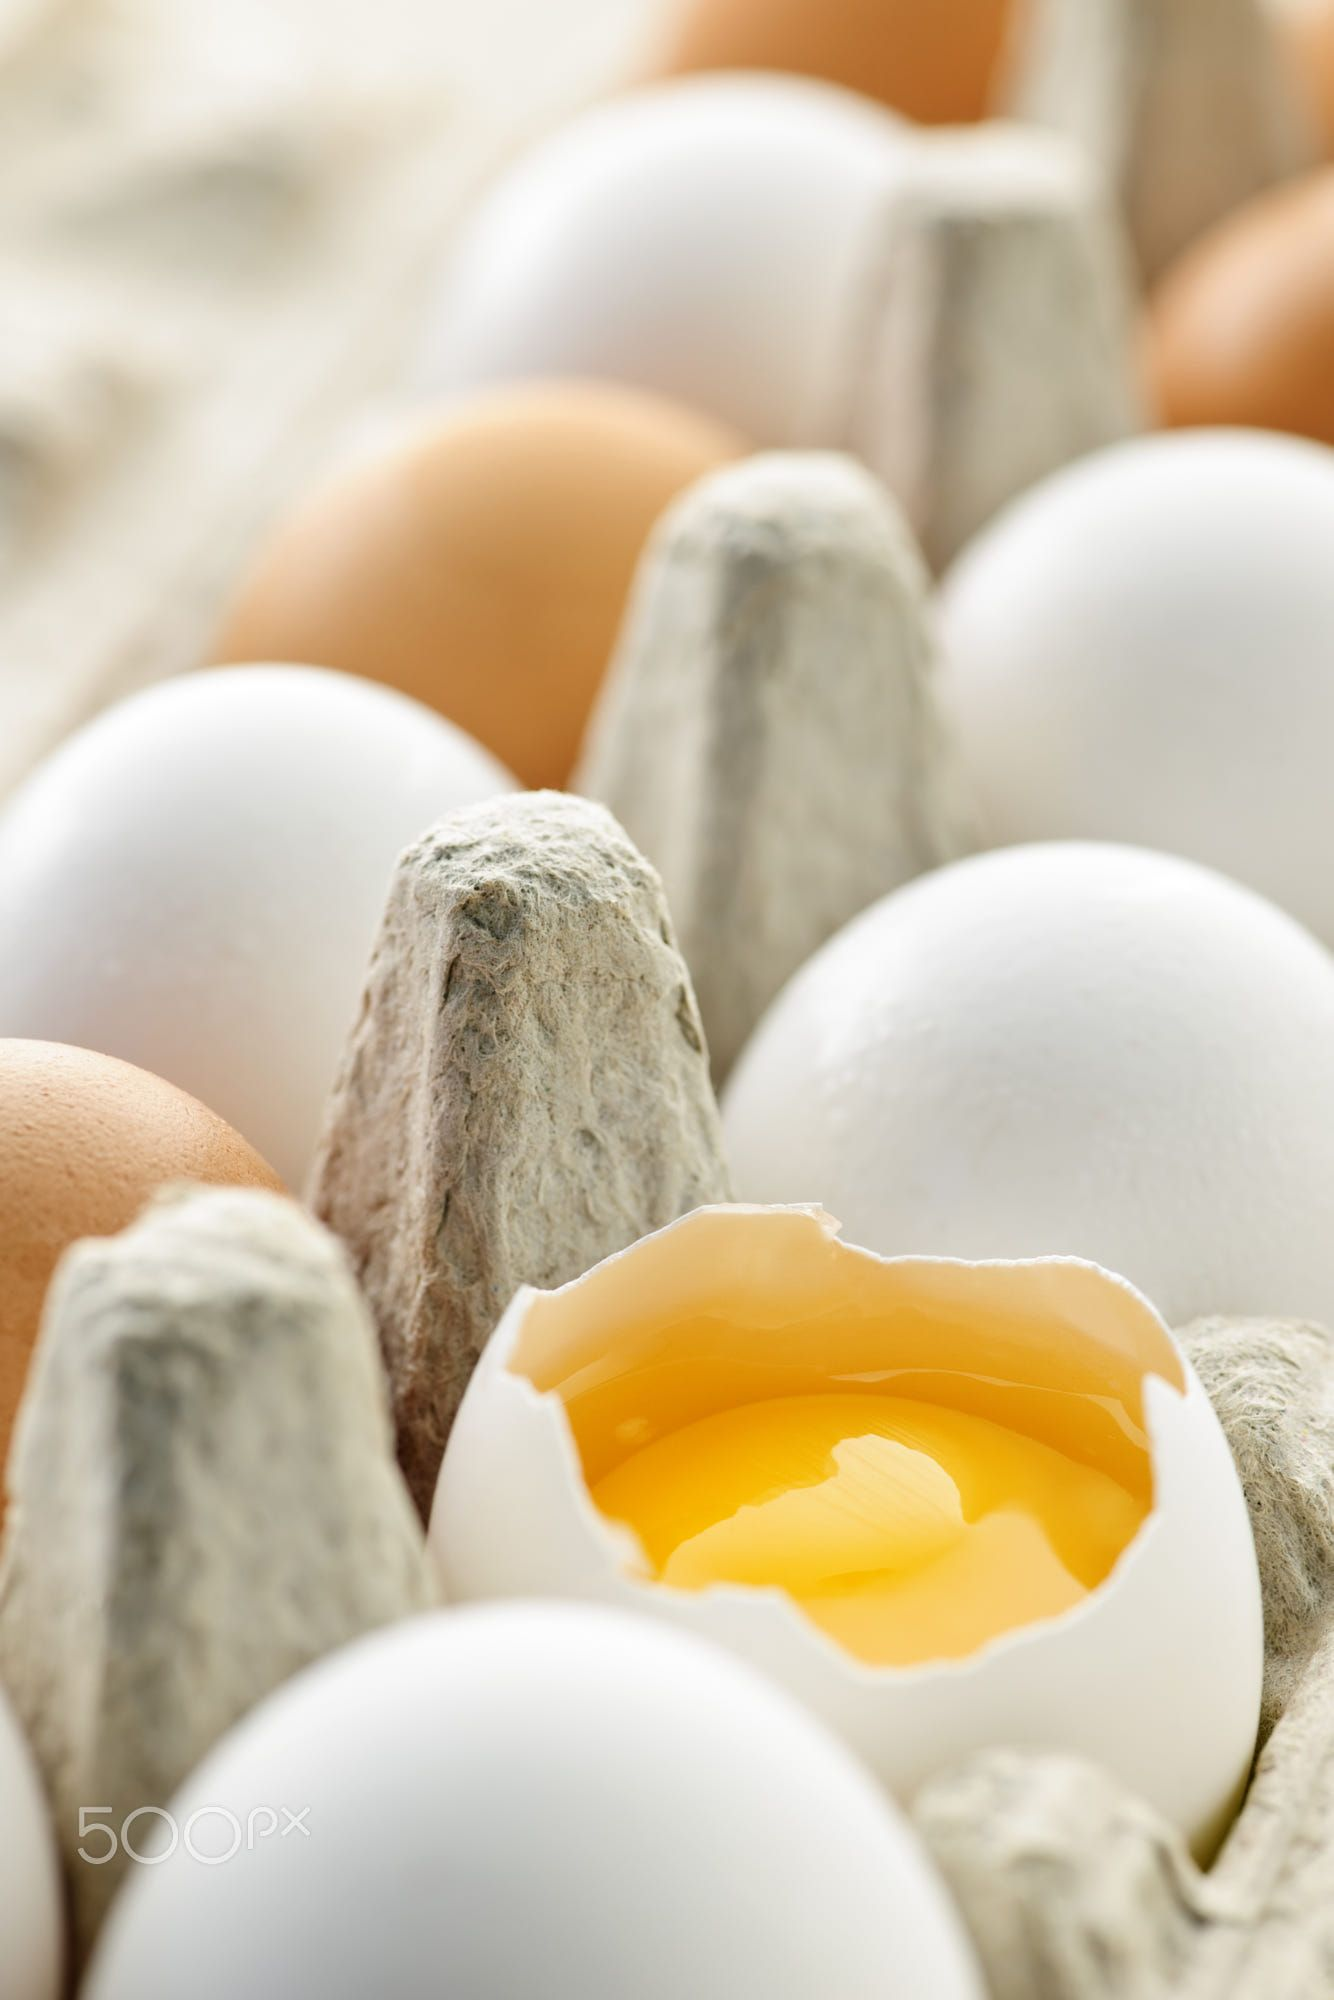 White and brown eggs in carton with broken egg Can dogs